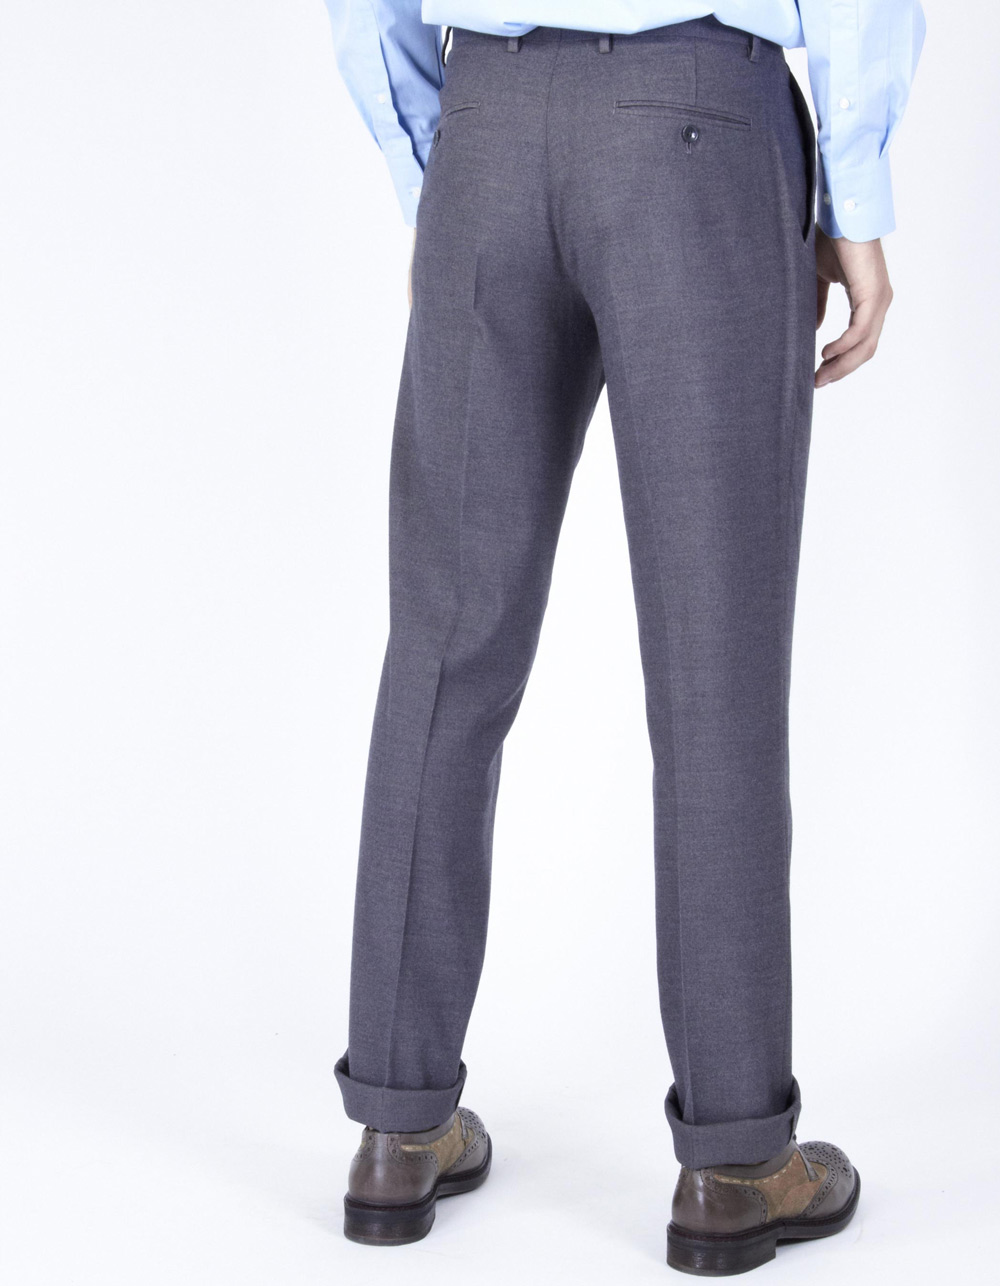 Grey formal trousers - Backside